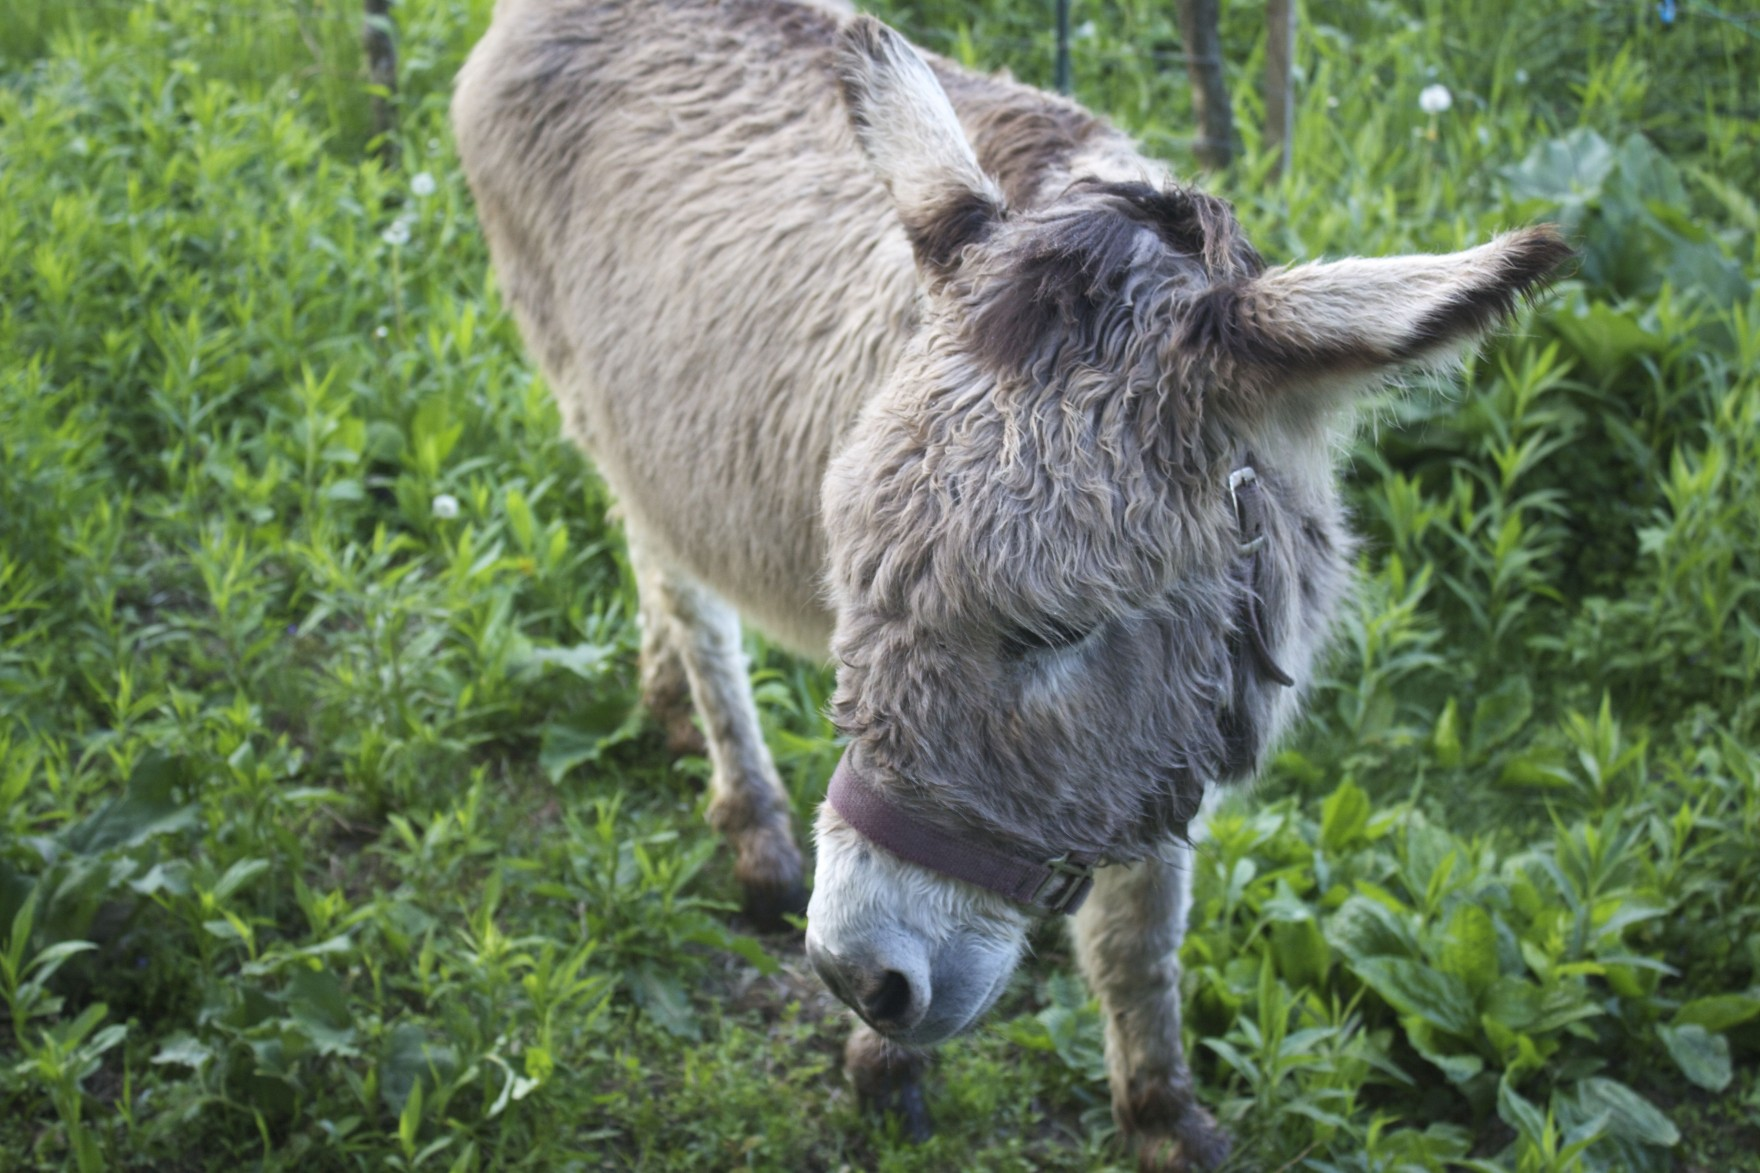 The Bored Vegetarian Donkey